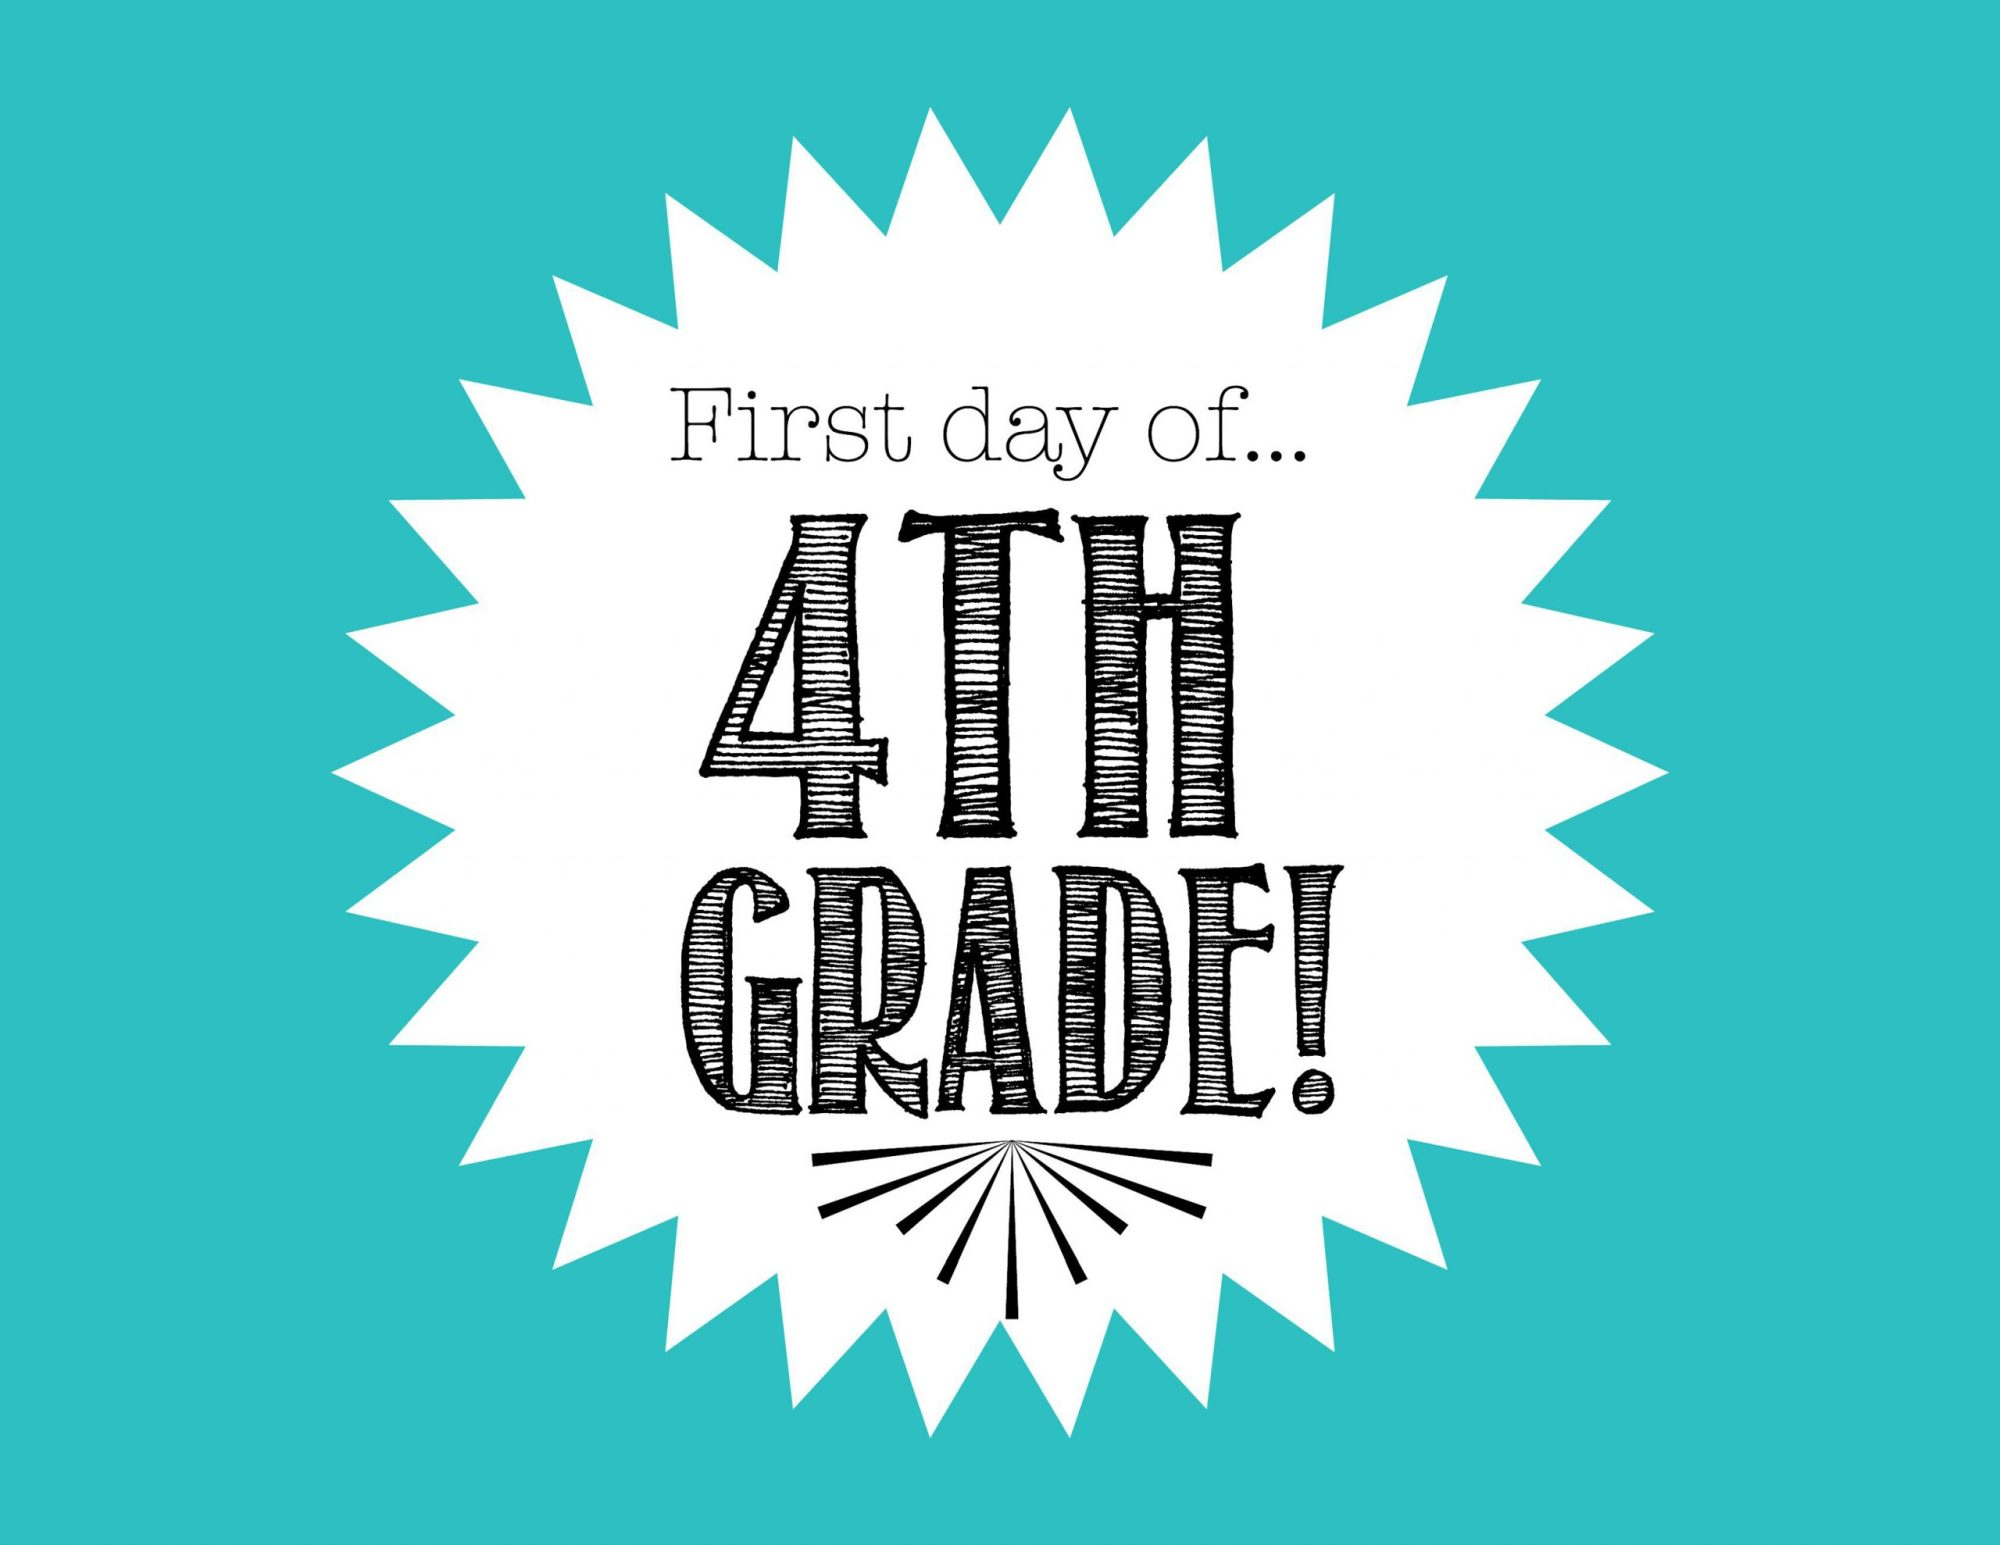 hight resolution of First Day of 4th Grade FREE Back to School Printable - Freebies2Deals